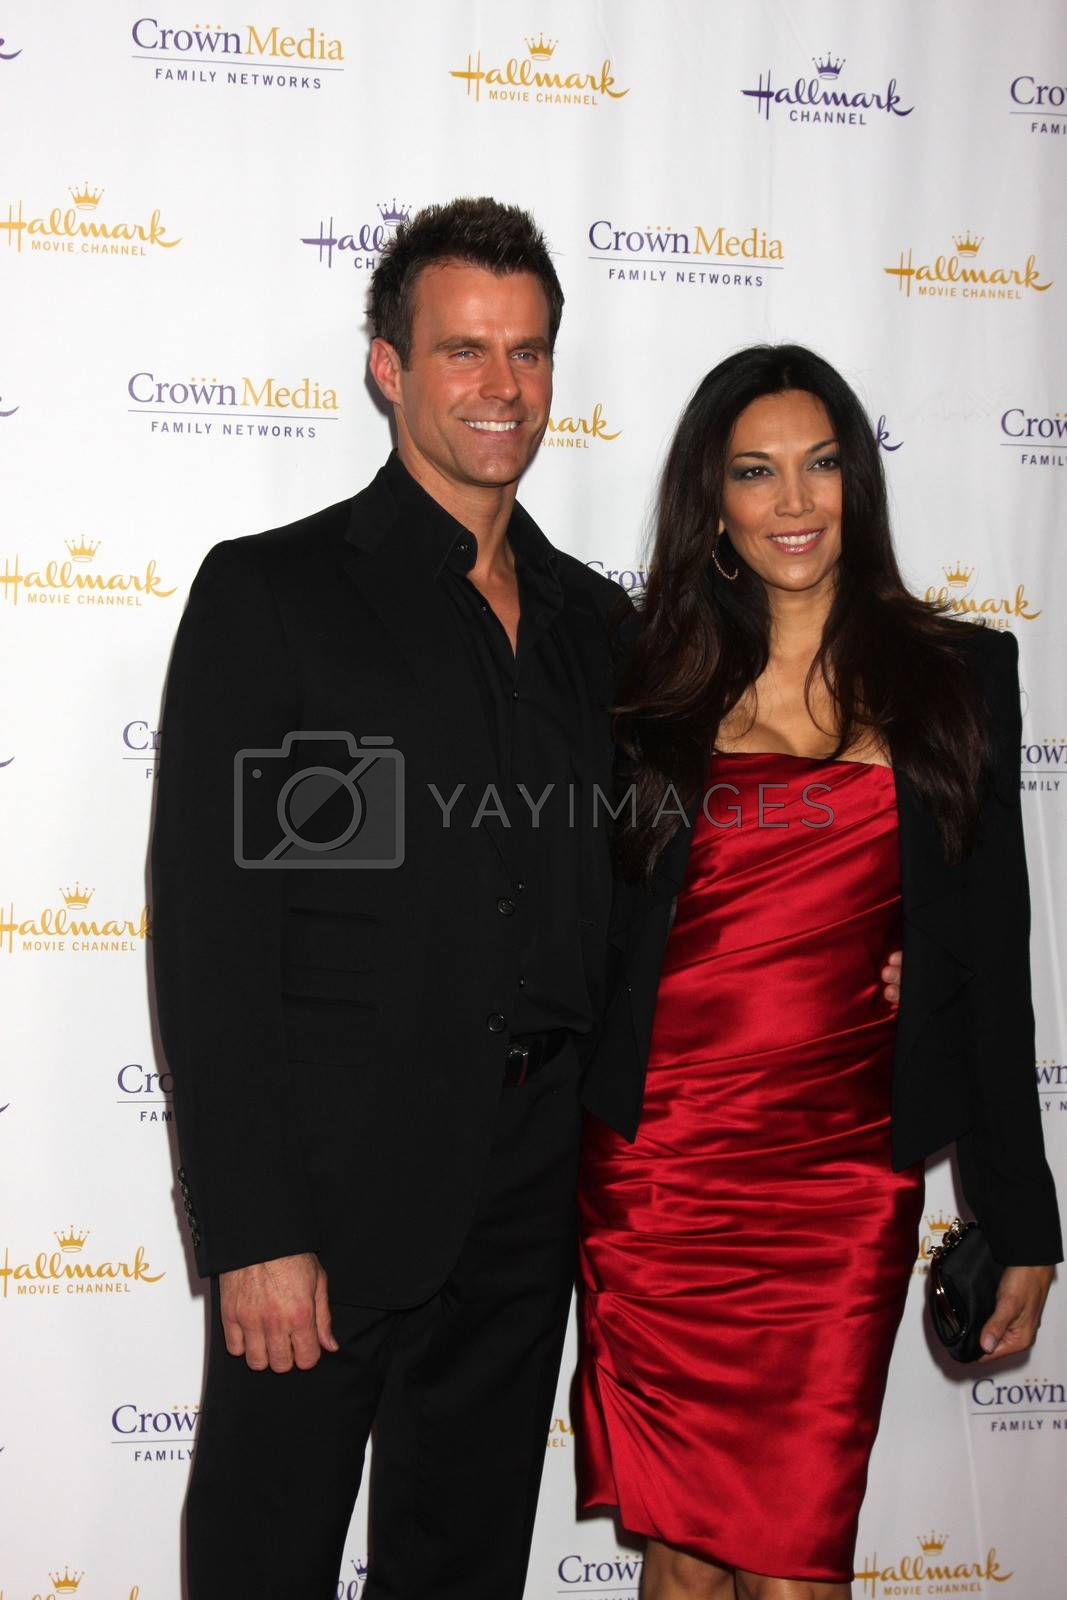 Cameron Mathison Vanessa Arevalo At The Hallmark Channel 2014 Tv Critics Association Press Tour Gala Huntington Library Pasadena Ca 01 11 14 Imagecollect Royalty Free Stock Image Stock Photos Royalty Free Images Vectors Footage Yayimages See what vanessa arevalo (arevalo1987) has discovered on pinterest, the world's biggest collection of ideas. https www yayimages com 12454376 cameron mathison vanessa arevaloat the hallmark channel 2014 tv critics association press tour gala huntington library pasadena ca 01 11 14imagecollect html